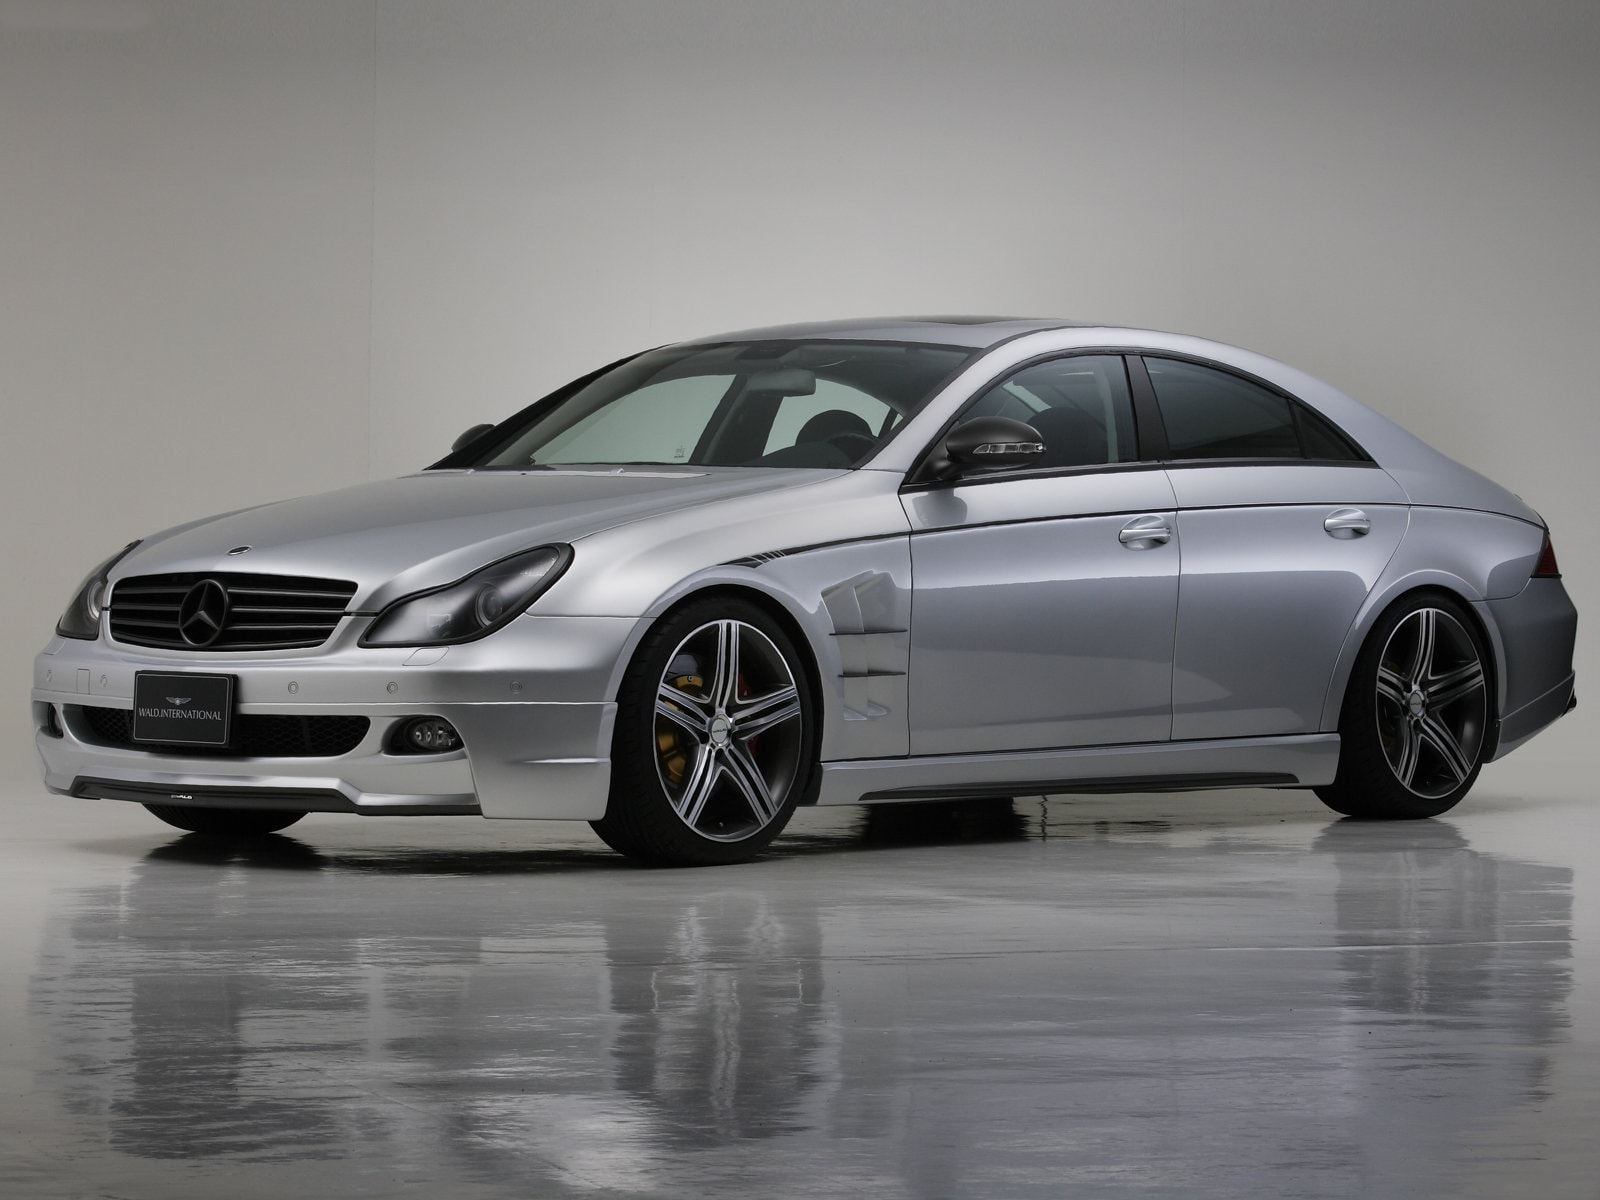 2005 Mercedes-Benz CLS widescreen wallpapers